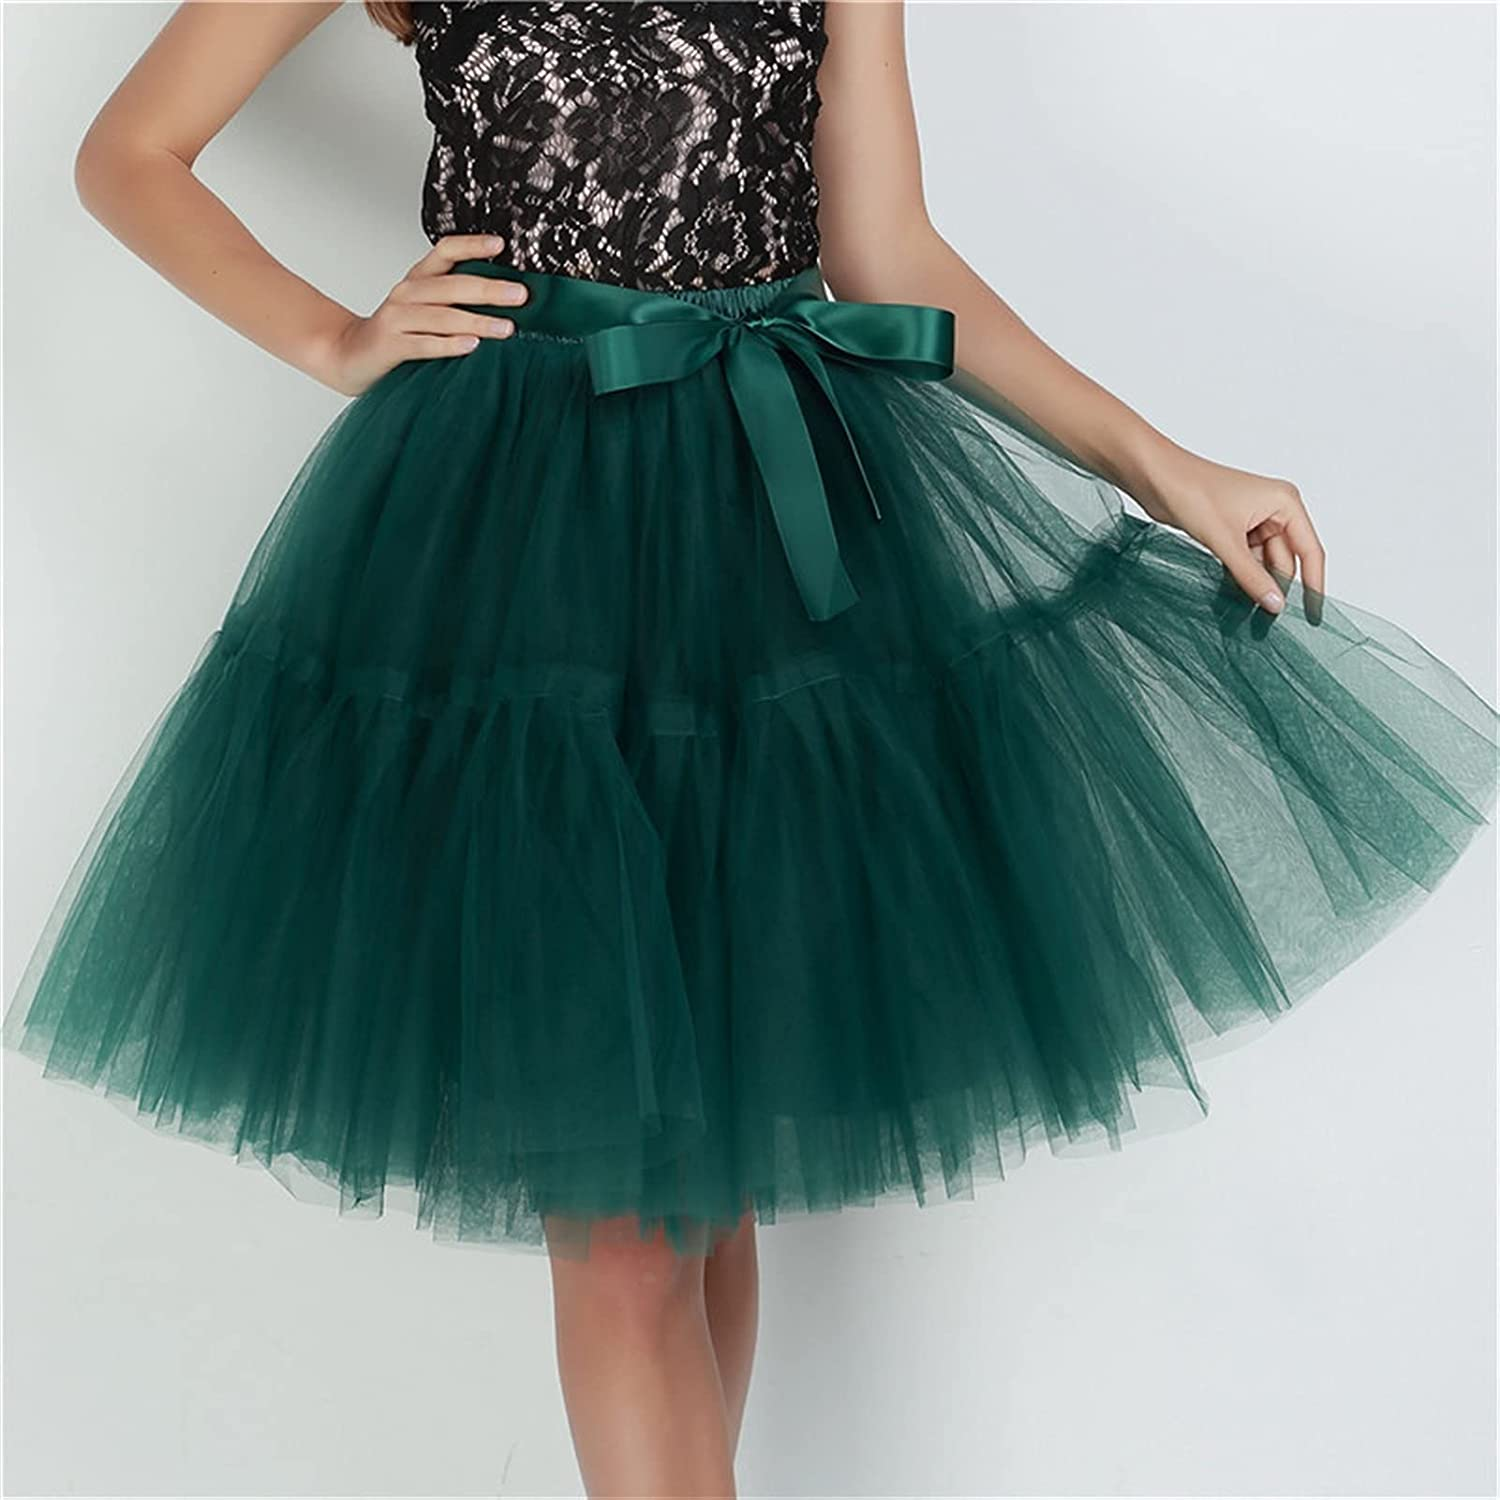 without logo Petticoat 5 Layers 60cm Tutu Tulle Skirt Vintage Midi Pleated Skirts Womens Lolita Bridesmaid Wedding (Color : Dark Green, Size : One Size)